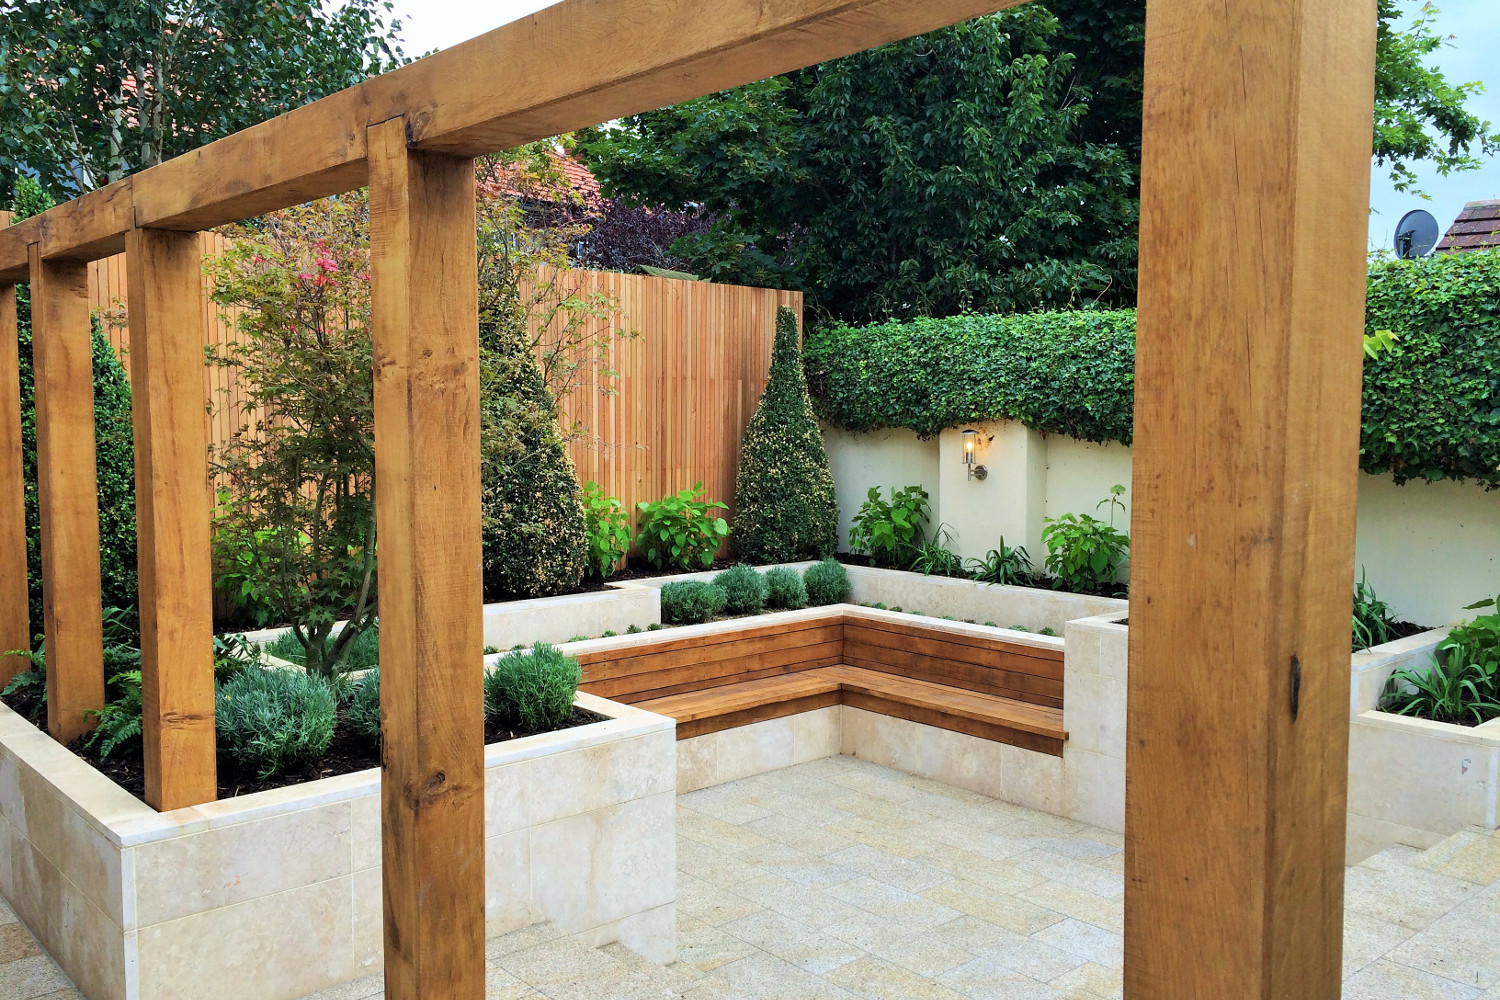 tim-austen-garden-design-stylish-sanctuary-glasnevin-4